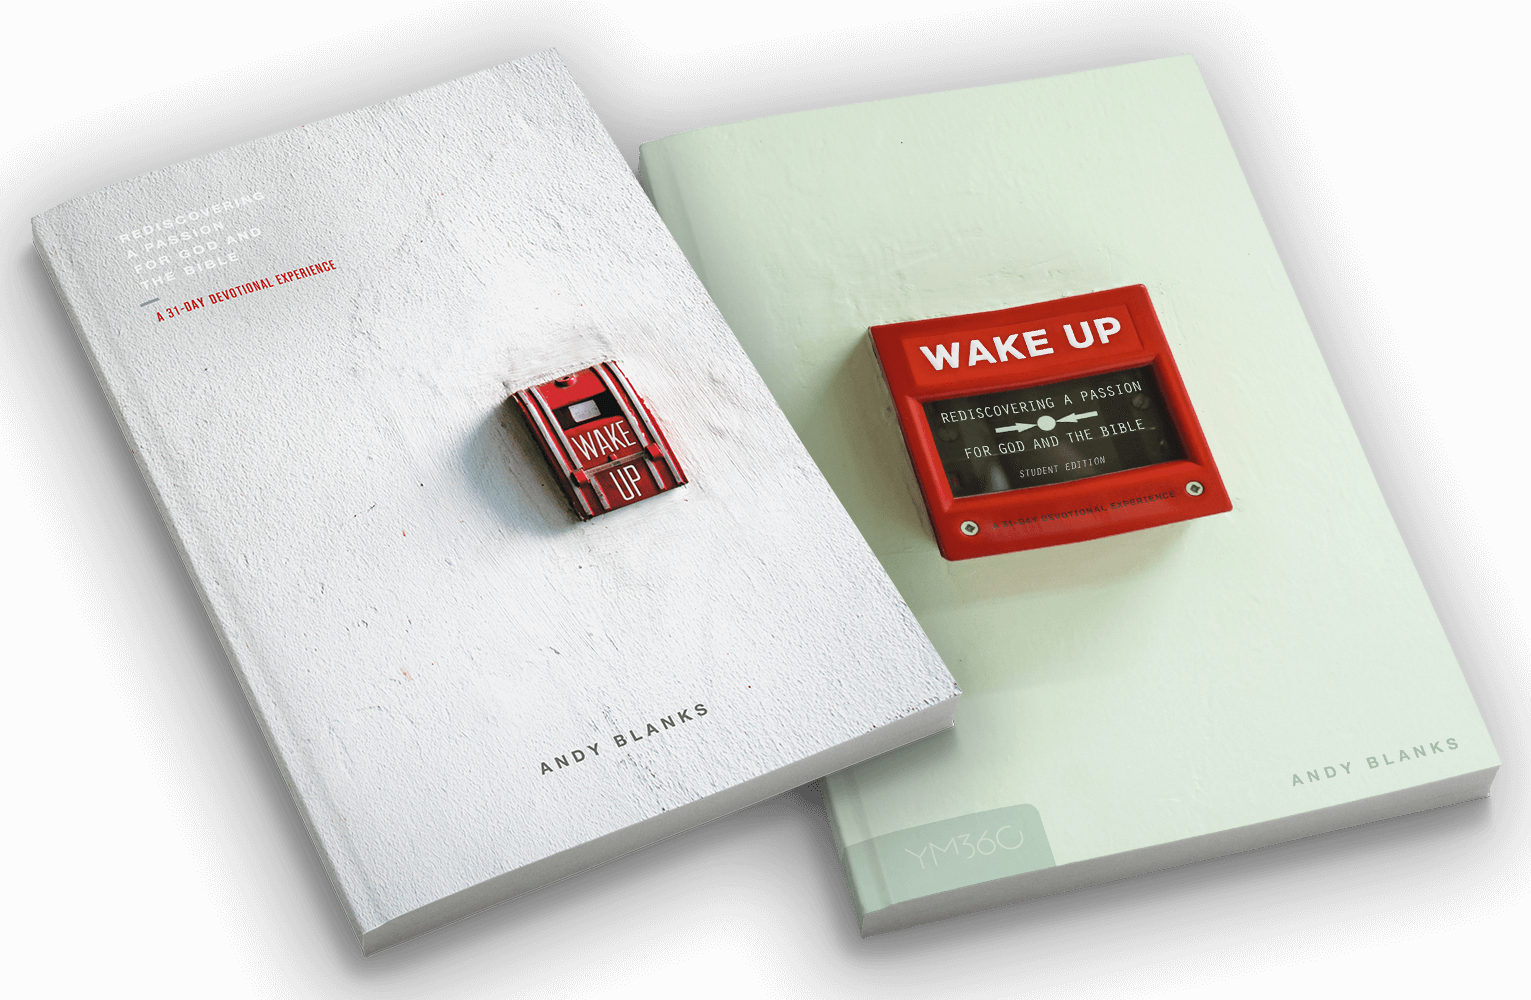 Wake Up: Rediscovering A Passion for God and the Bible Small Group Bundle